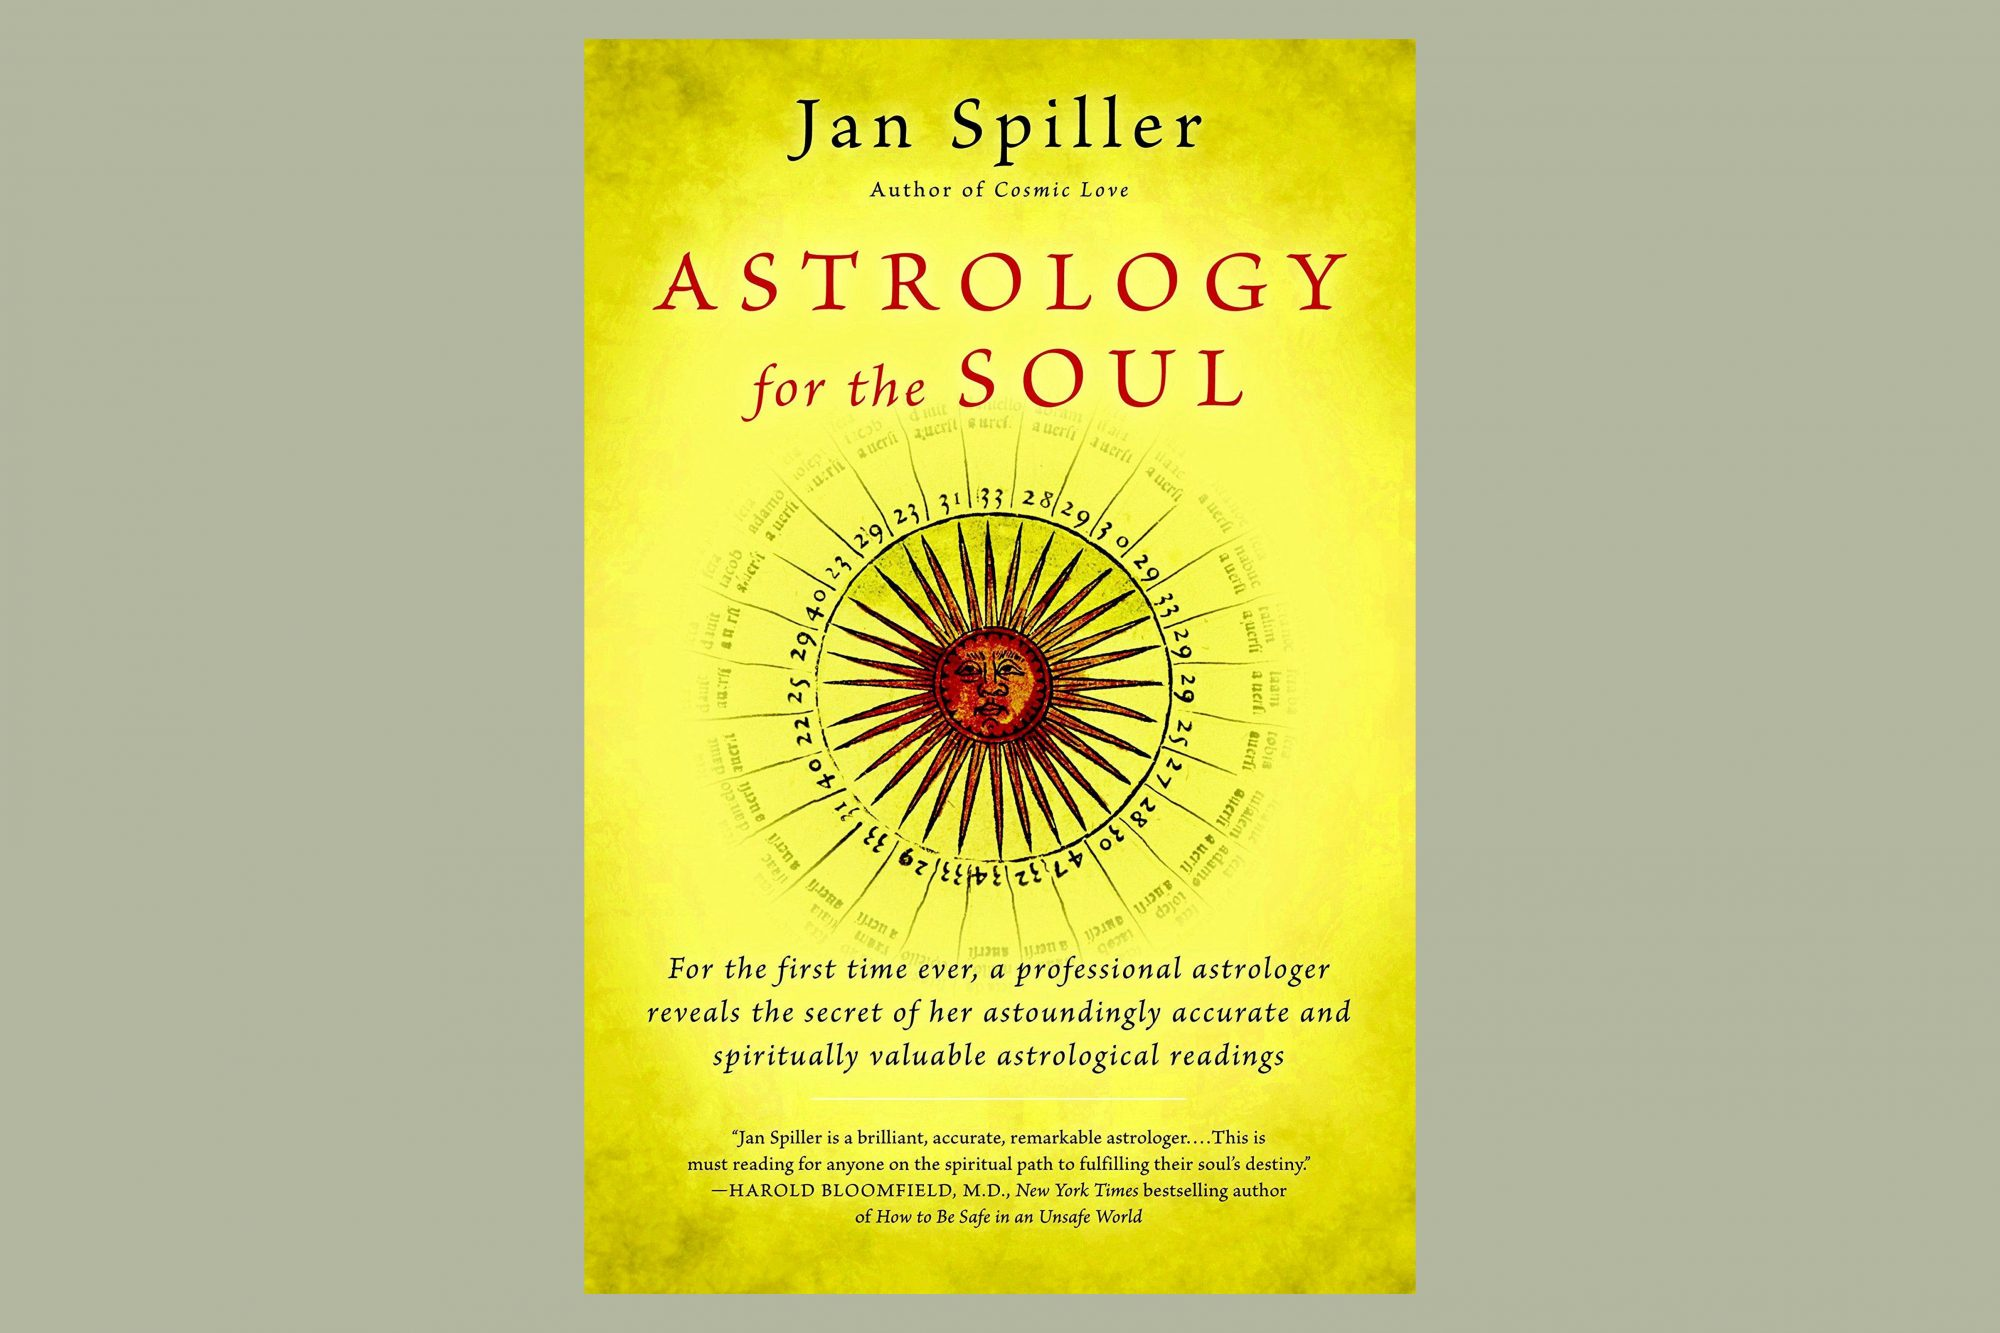 book jacket of astrology for the soul